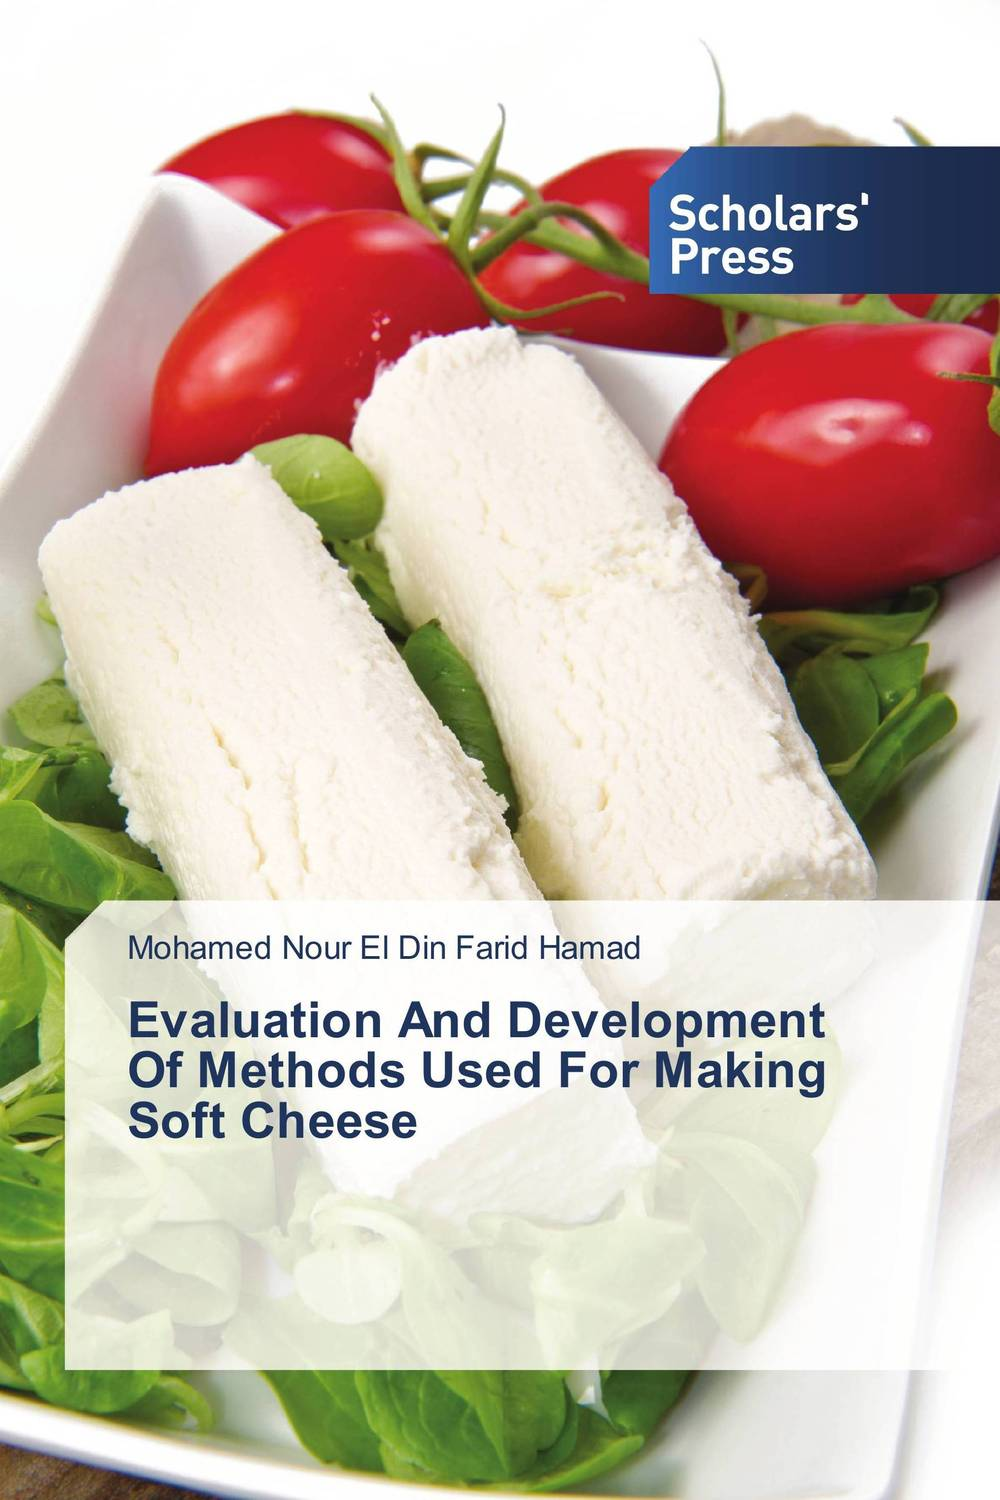 Evaluation And Development Of Methods Used For Making Soft Cheese трусы слип мужские pierre cardin pc 00004 bianco xl 50 52